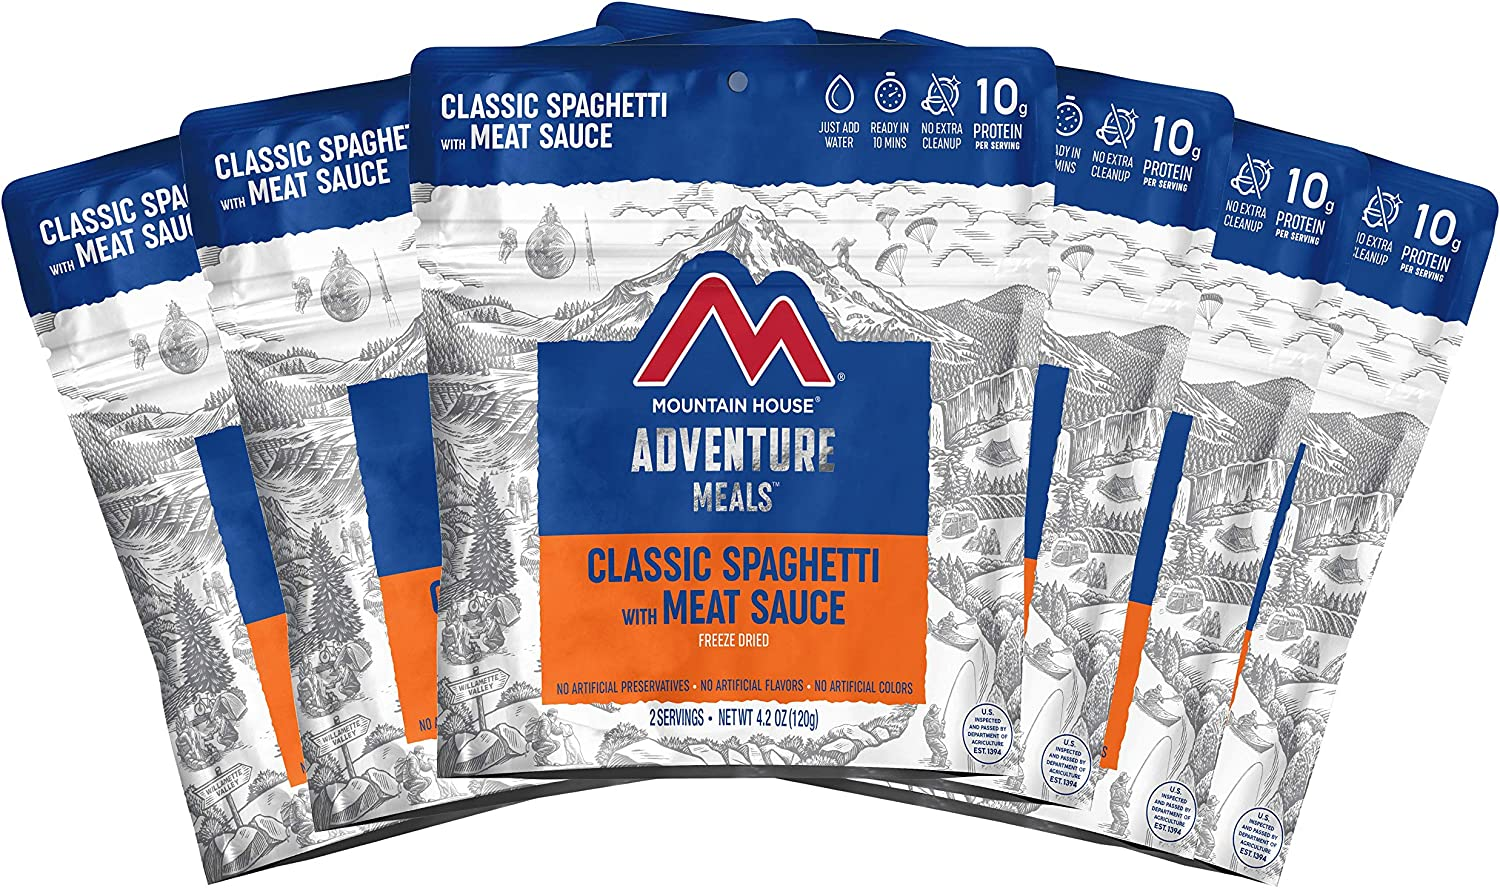 Mountain House Classic Spaghetti with Meat Sauce | Freeze Dried Backpacking & Camping Food | Survival & Emergency Food